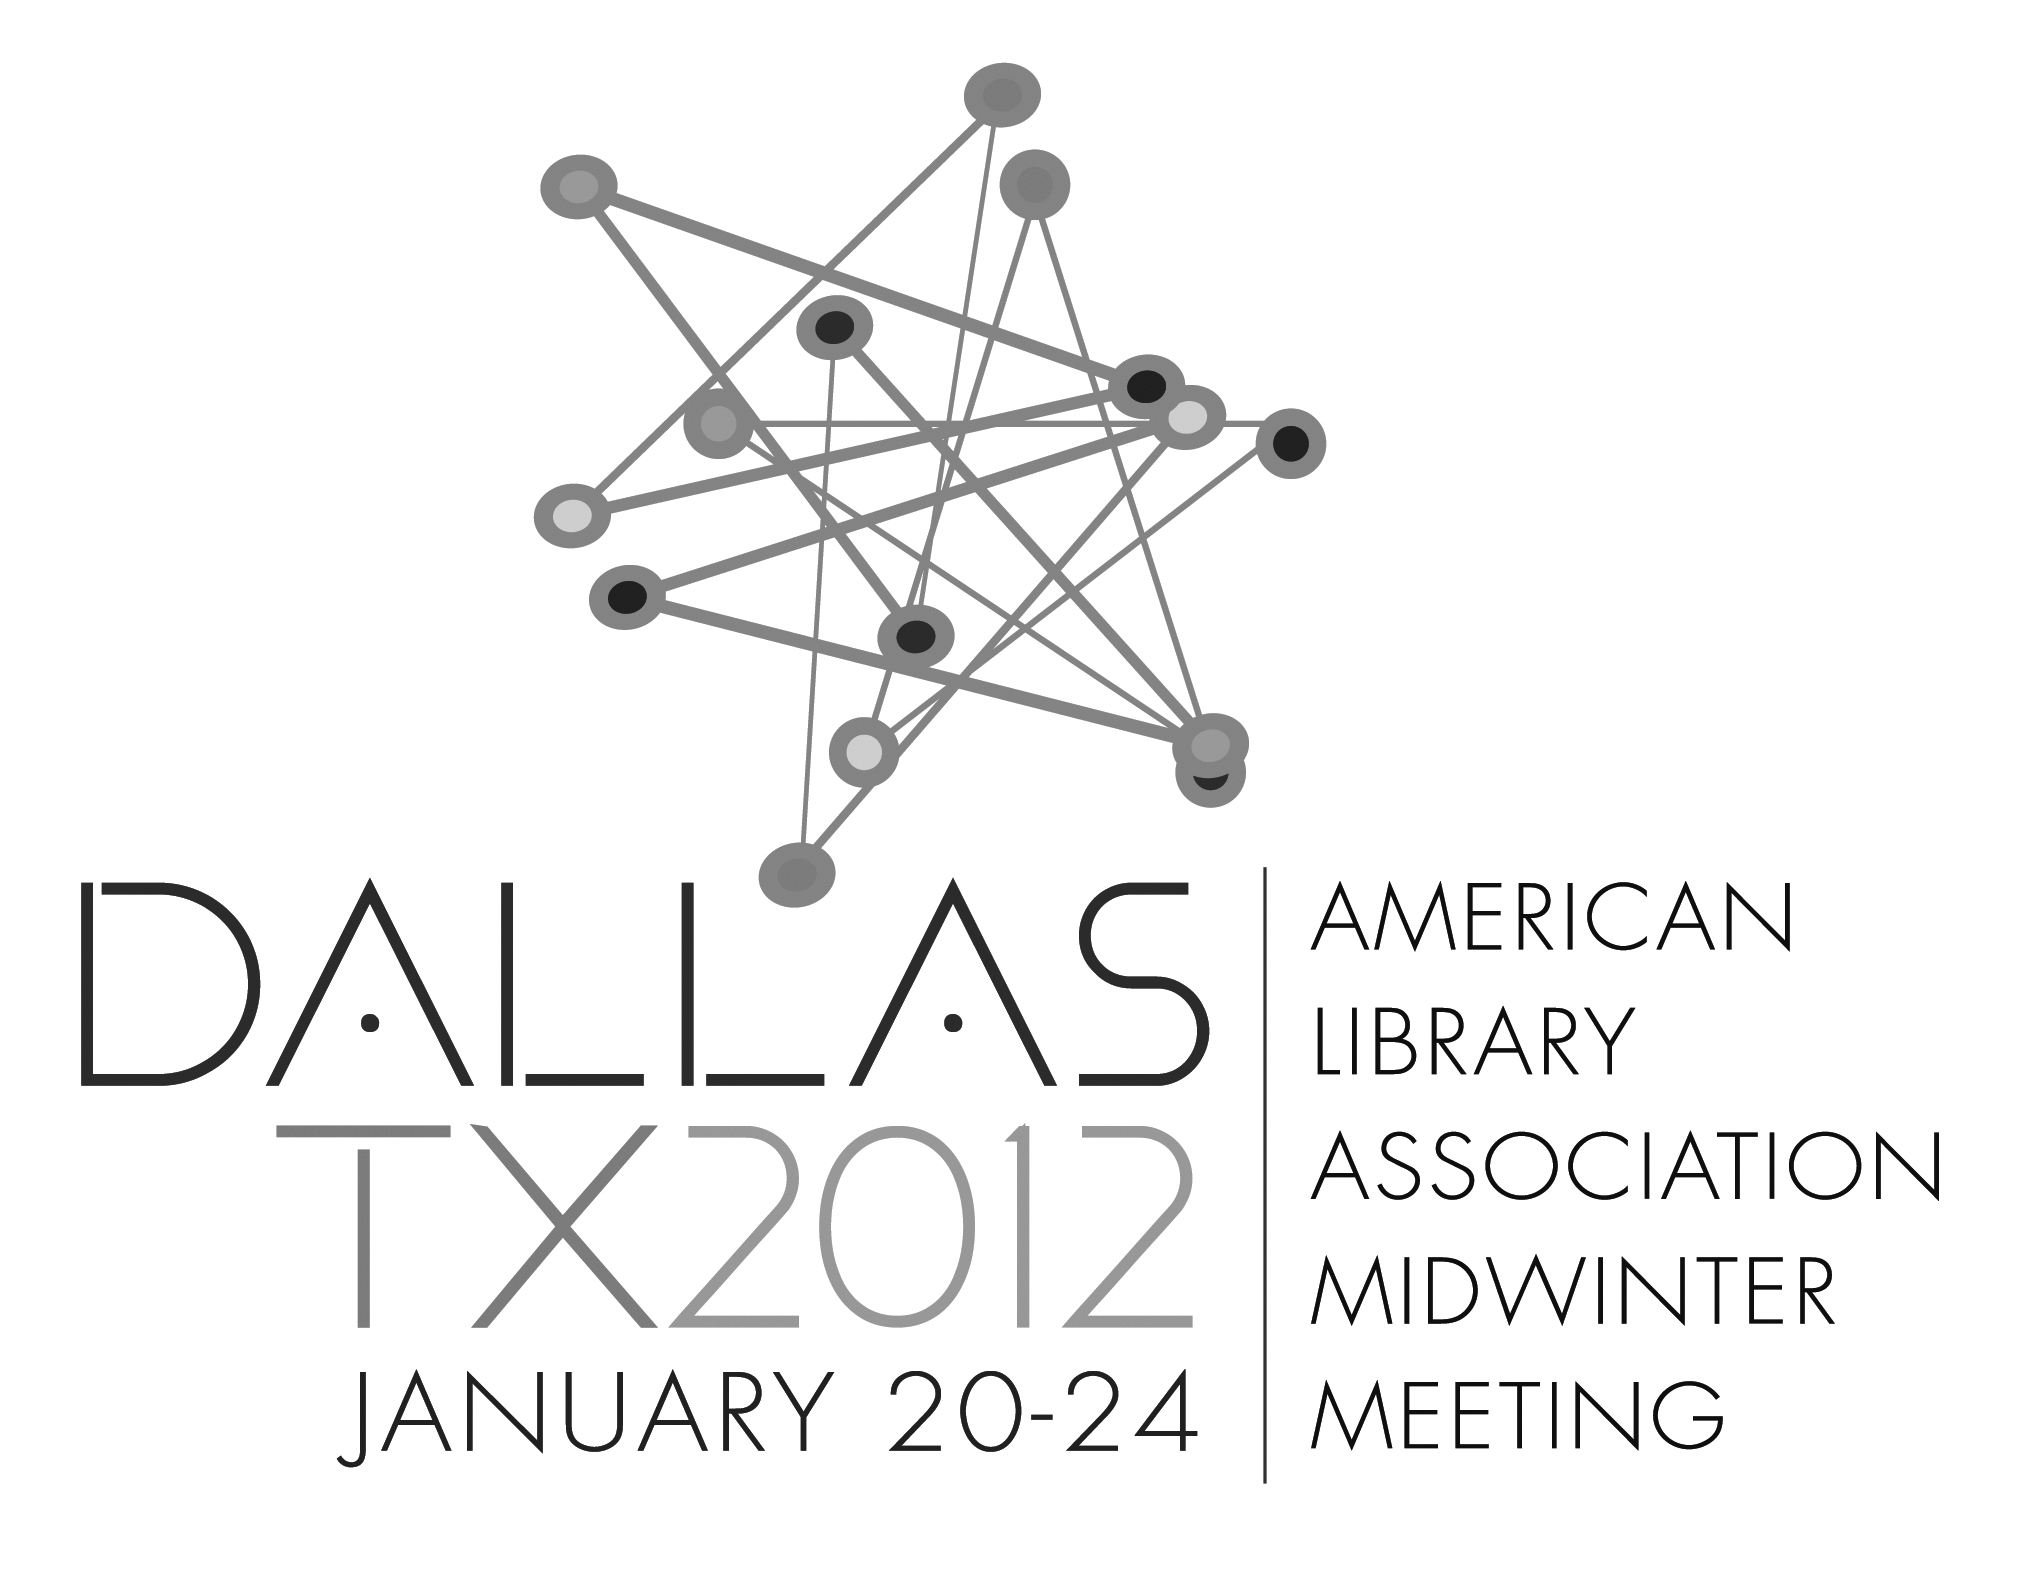 Black and white logo: American Library Association Midwinter Meeting, Dallas, Texas January 20-24, 2012